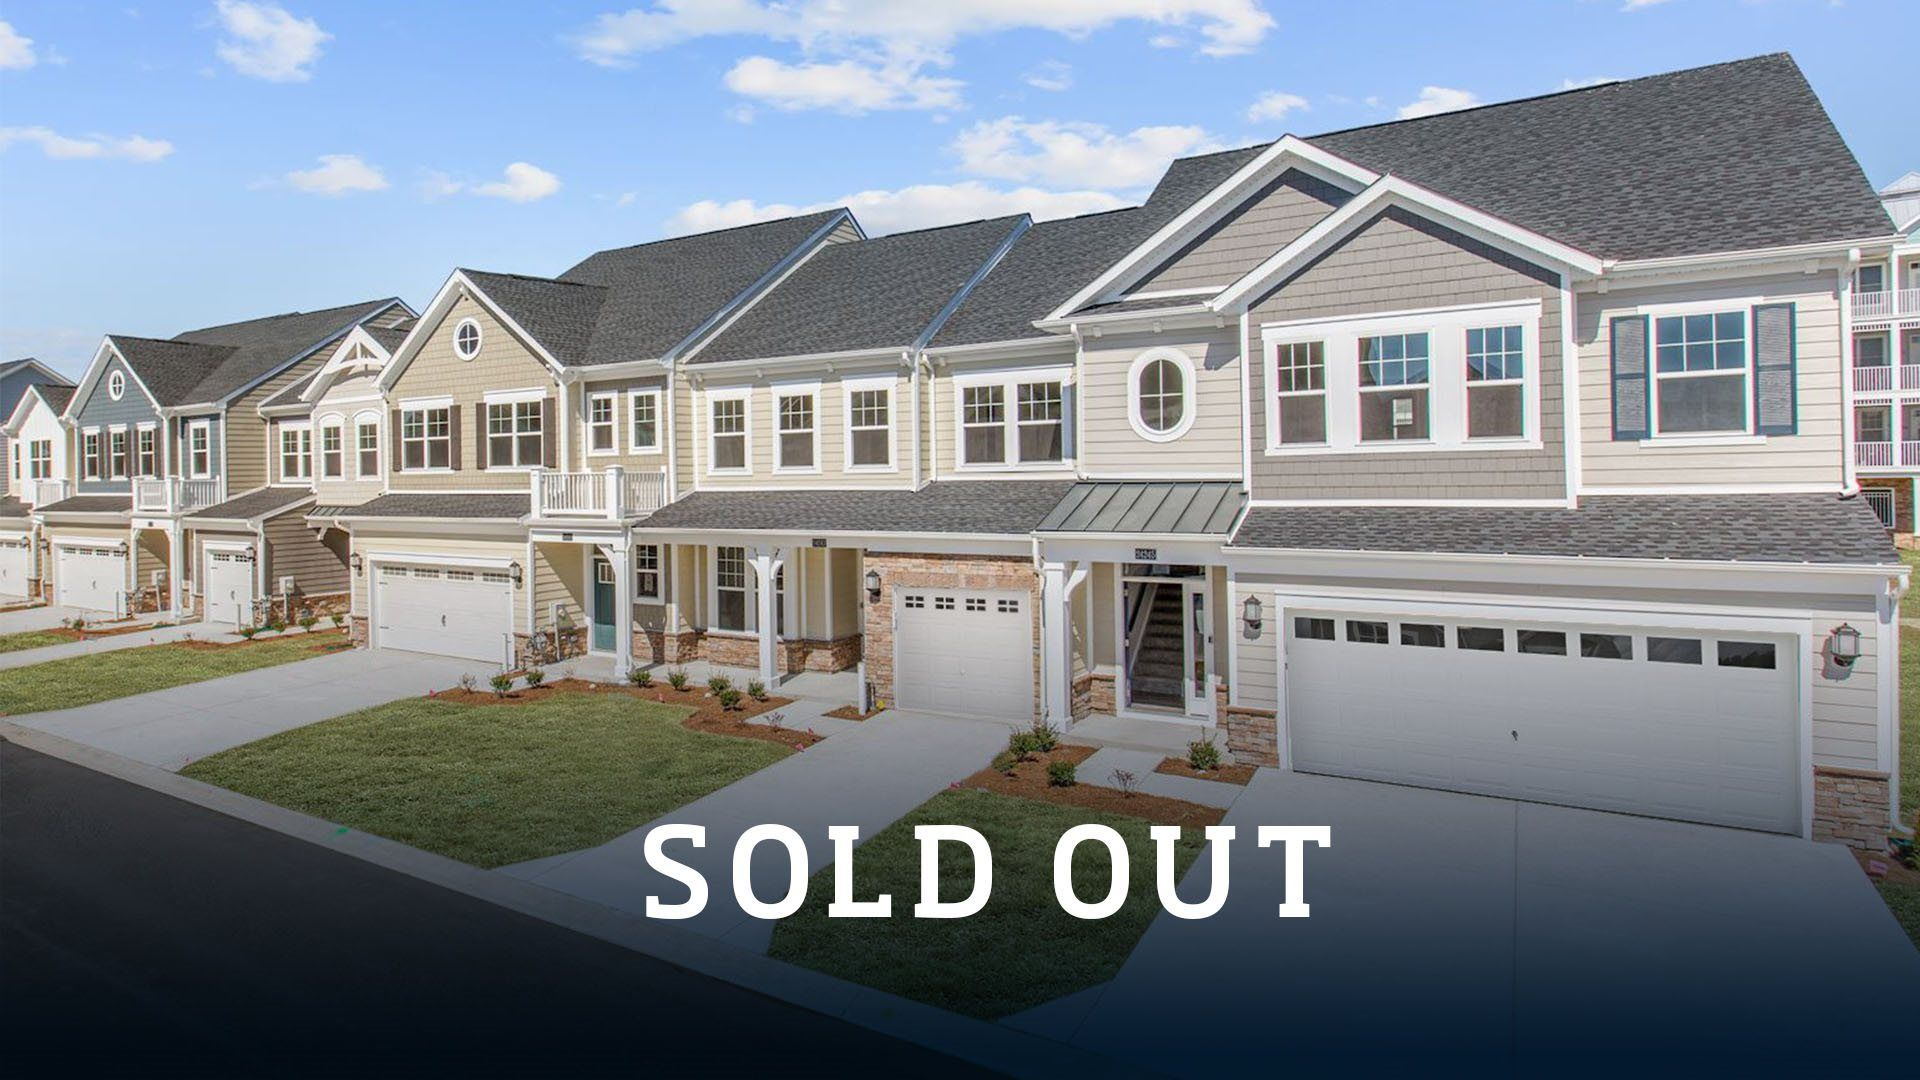 The MacArthur | Sold Out